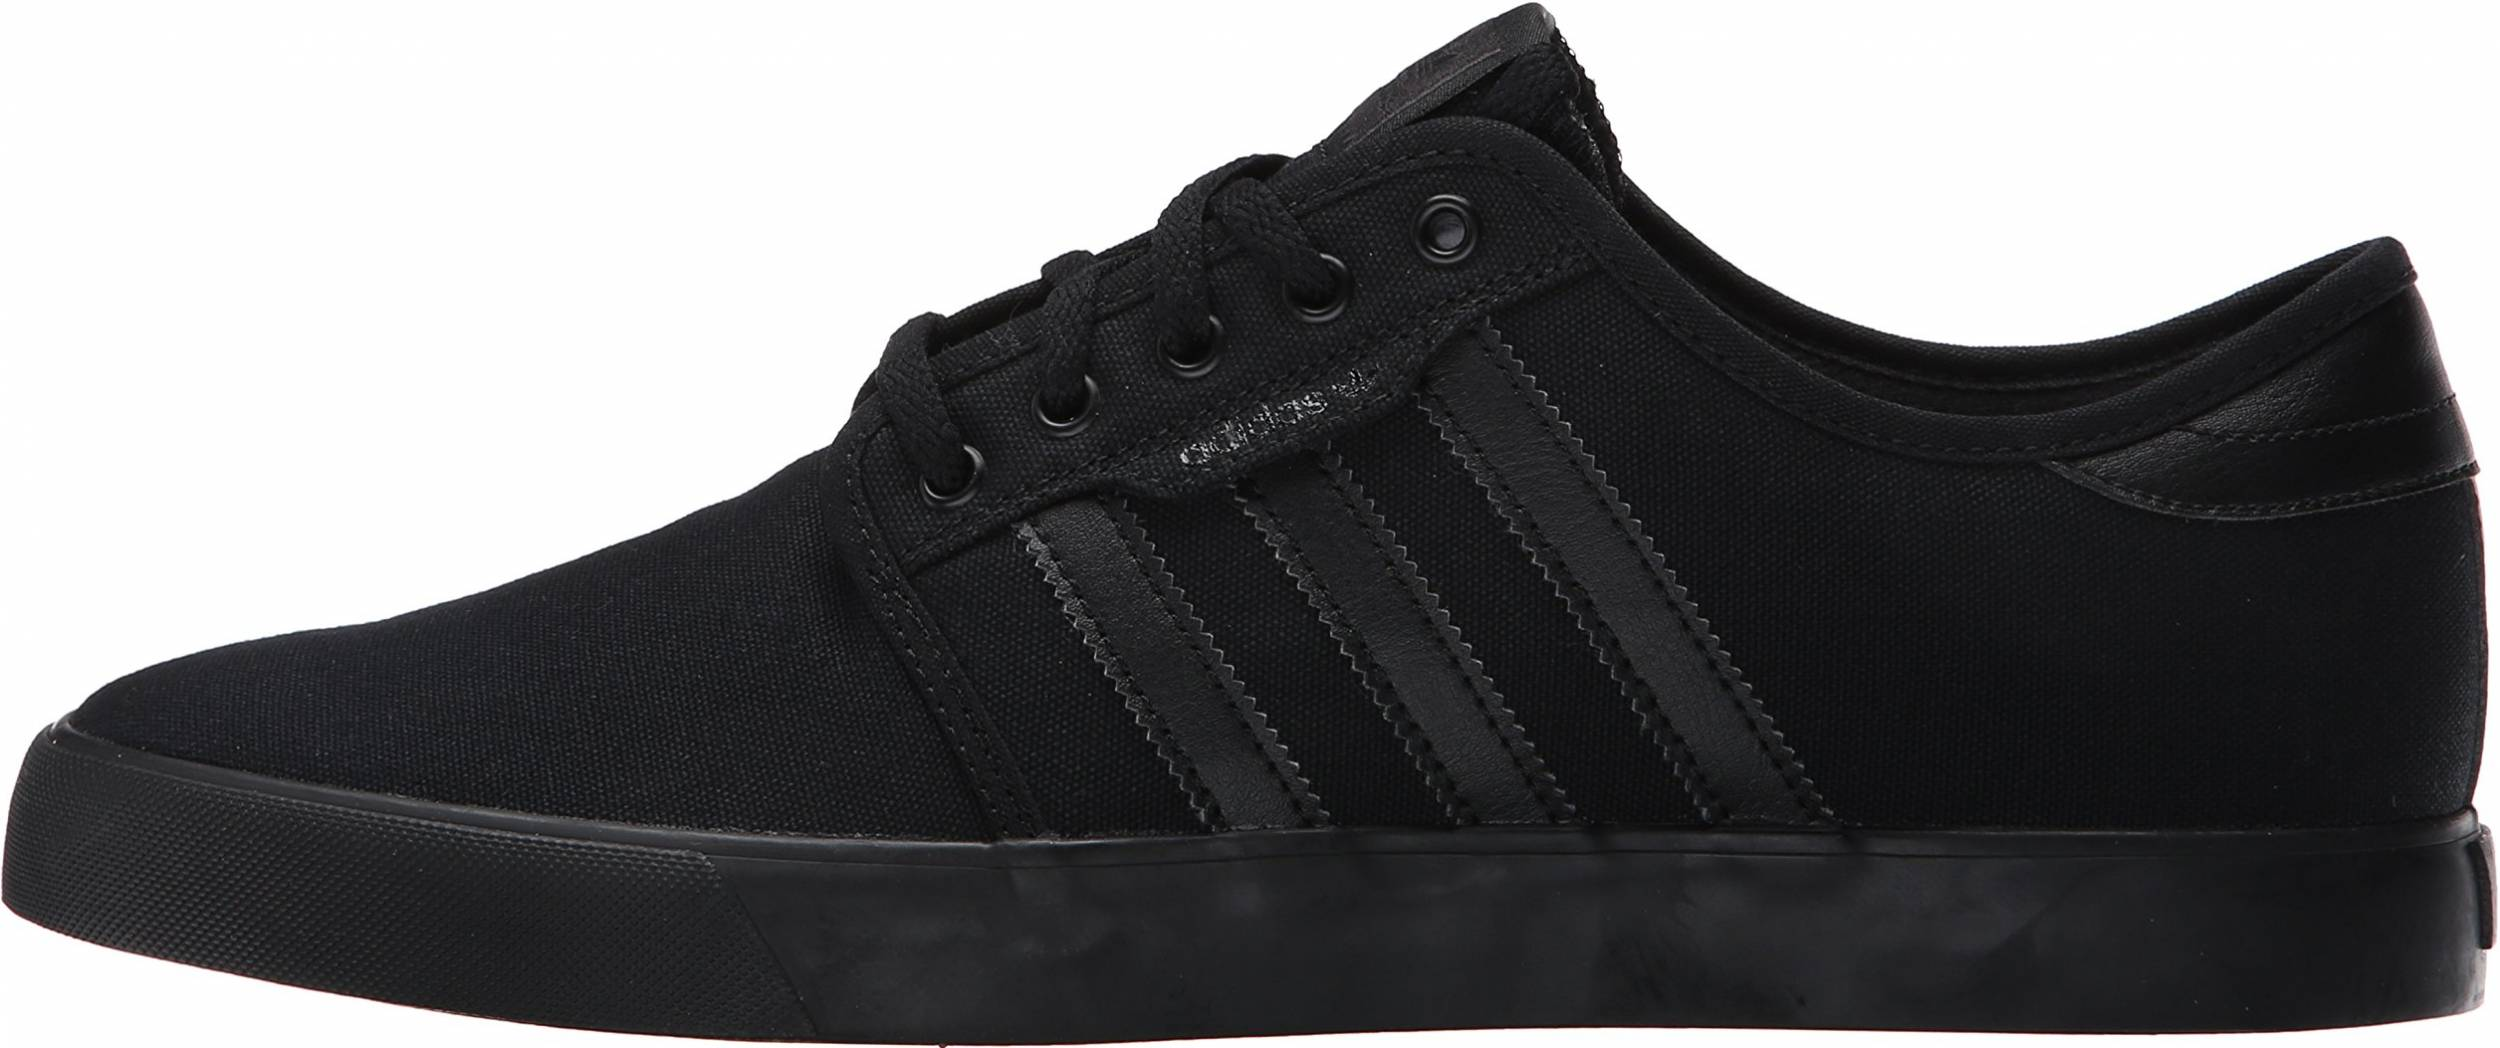 Idear Medicinal fractura  Adidas Seeley sneakers in 20+ colors (only $24) | RunRepeat